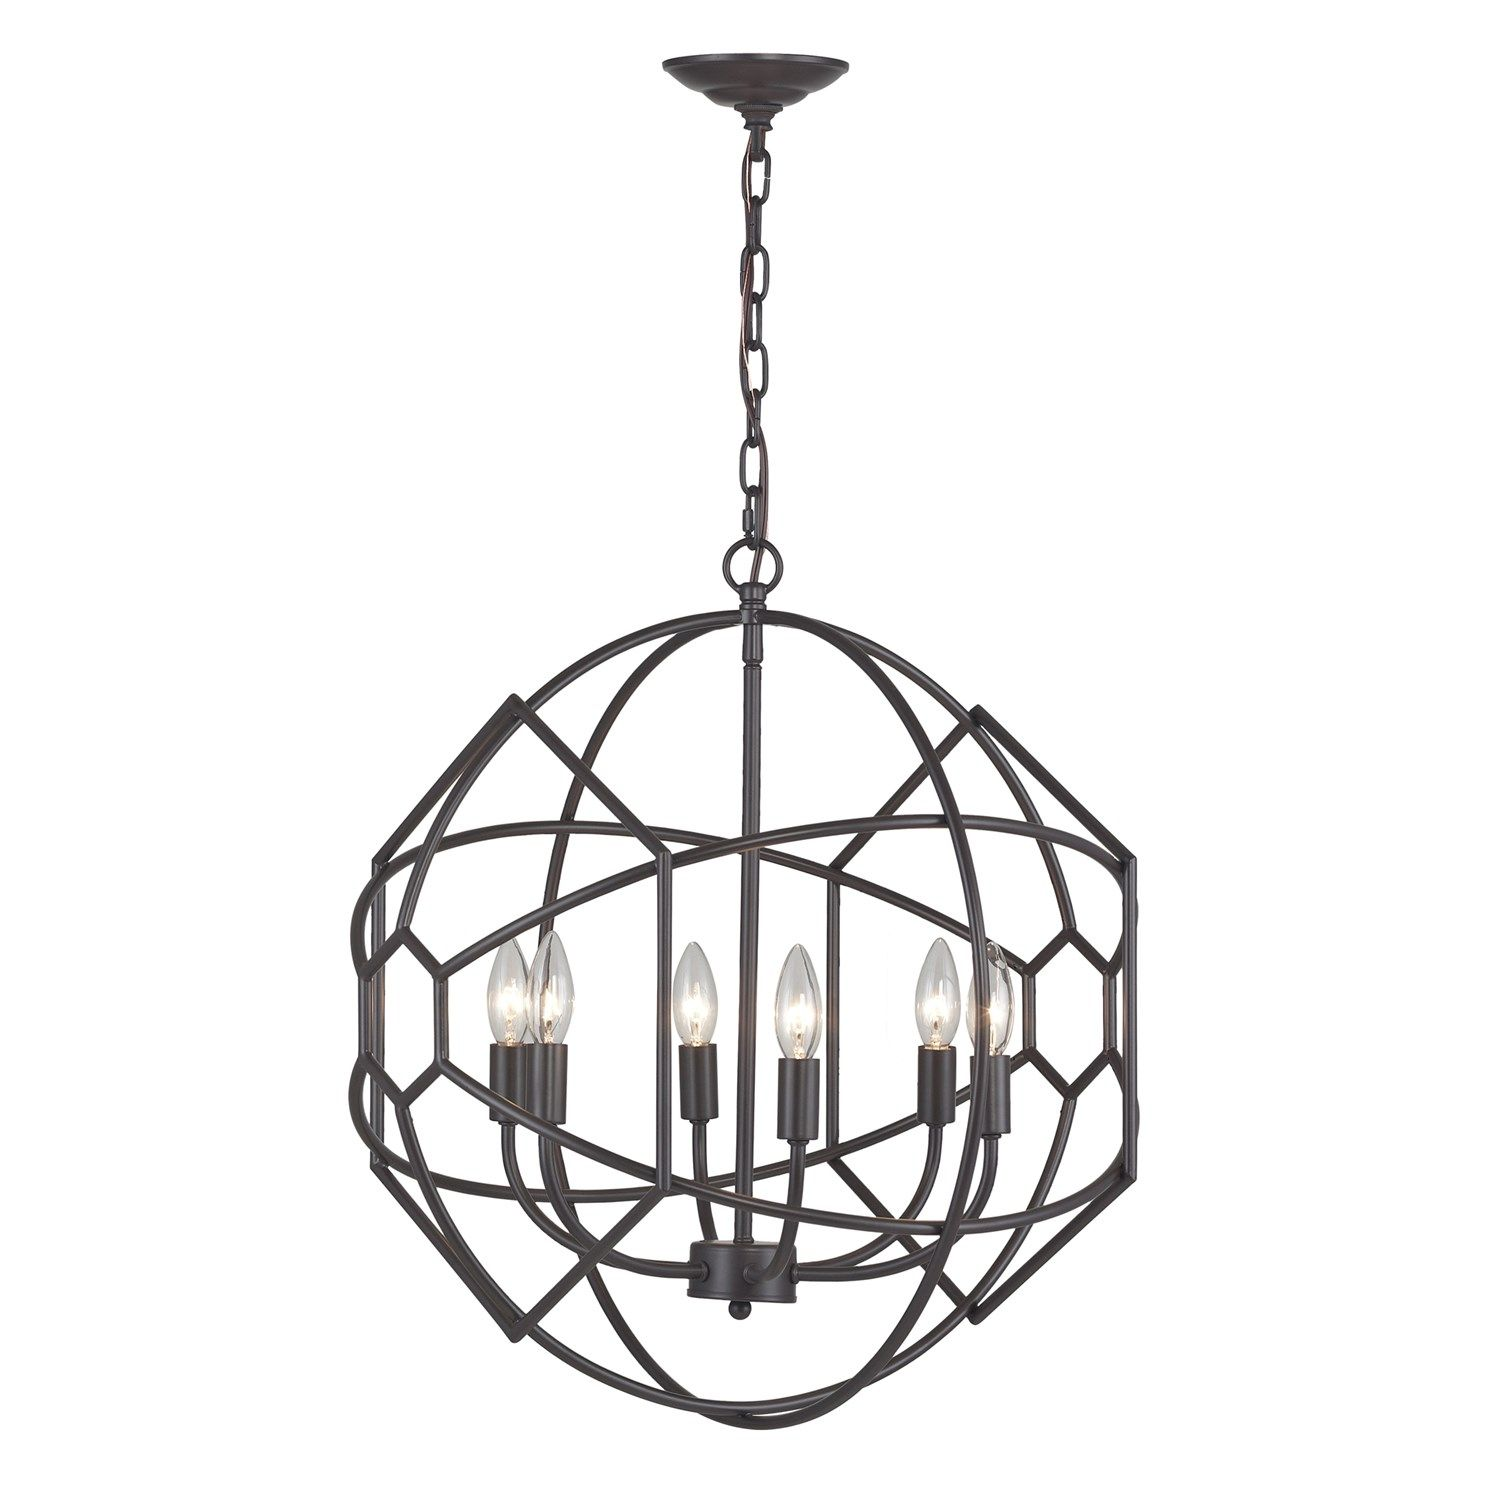 carlotta orb large mission chandeliers lara lowes bronze contemporary kahaz extra rectangular kichler house stained linear lighting glass maxim savoy chandelier light